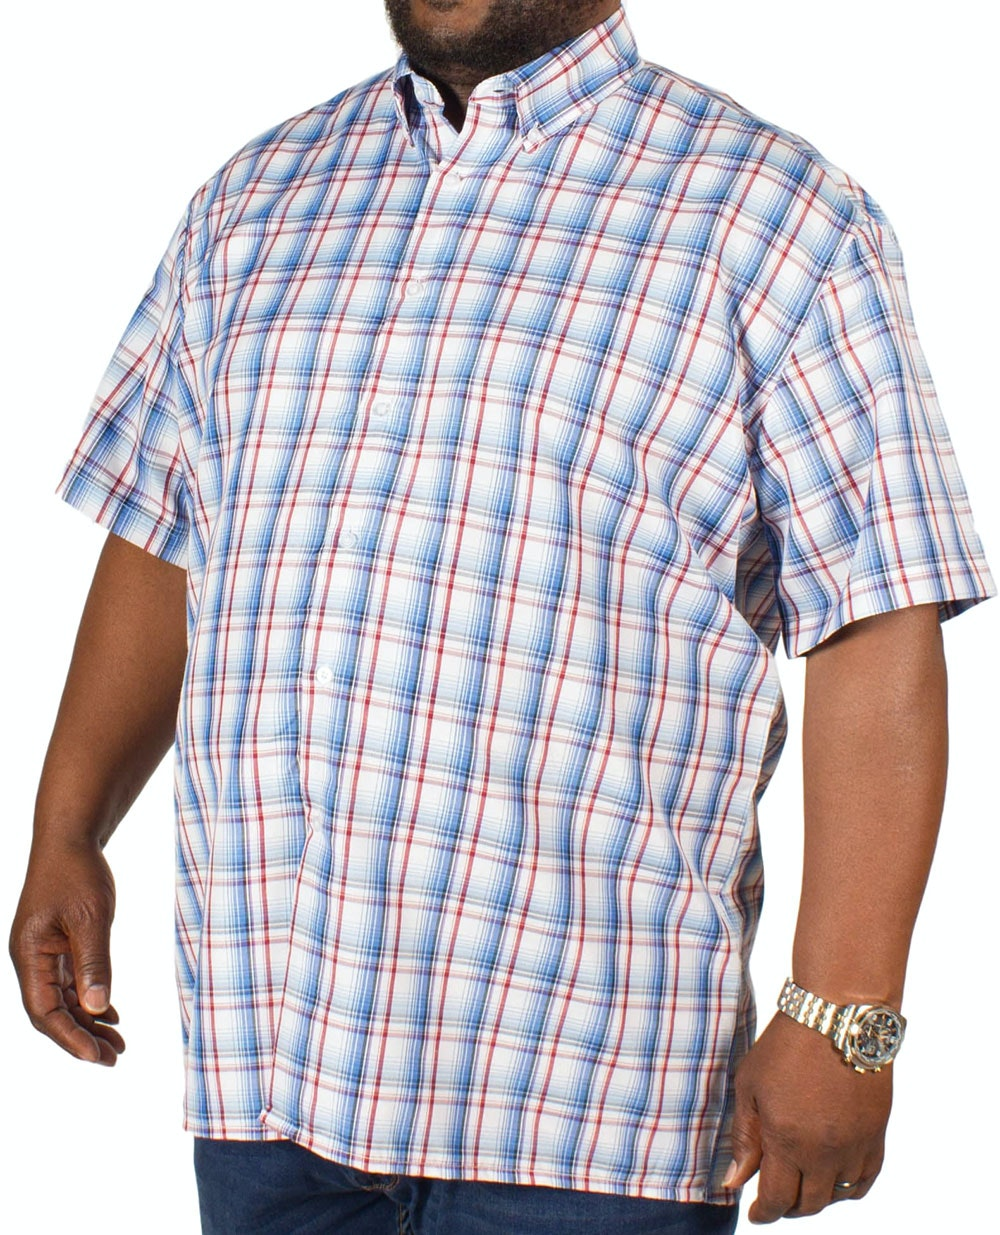 Fitzgerald Jamie Check Shirt Blue/Red